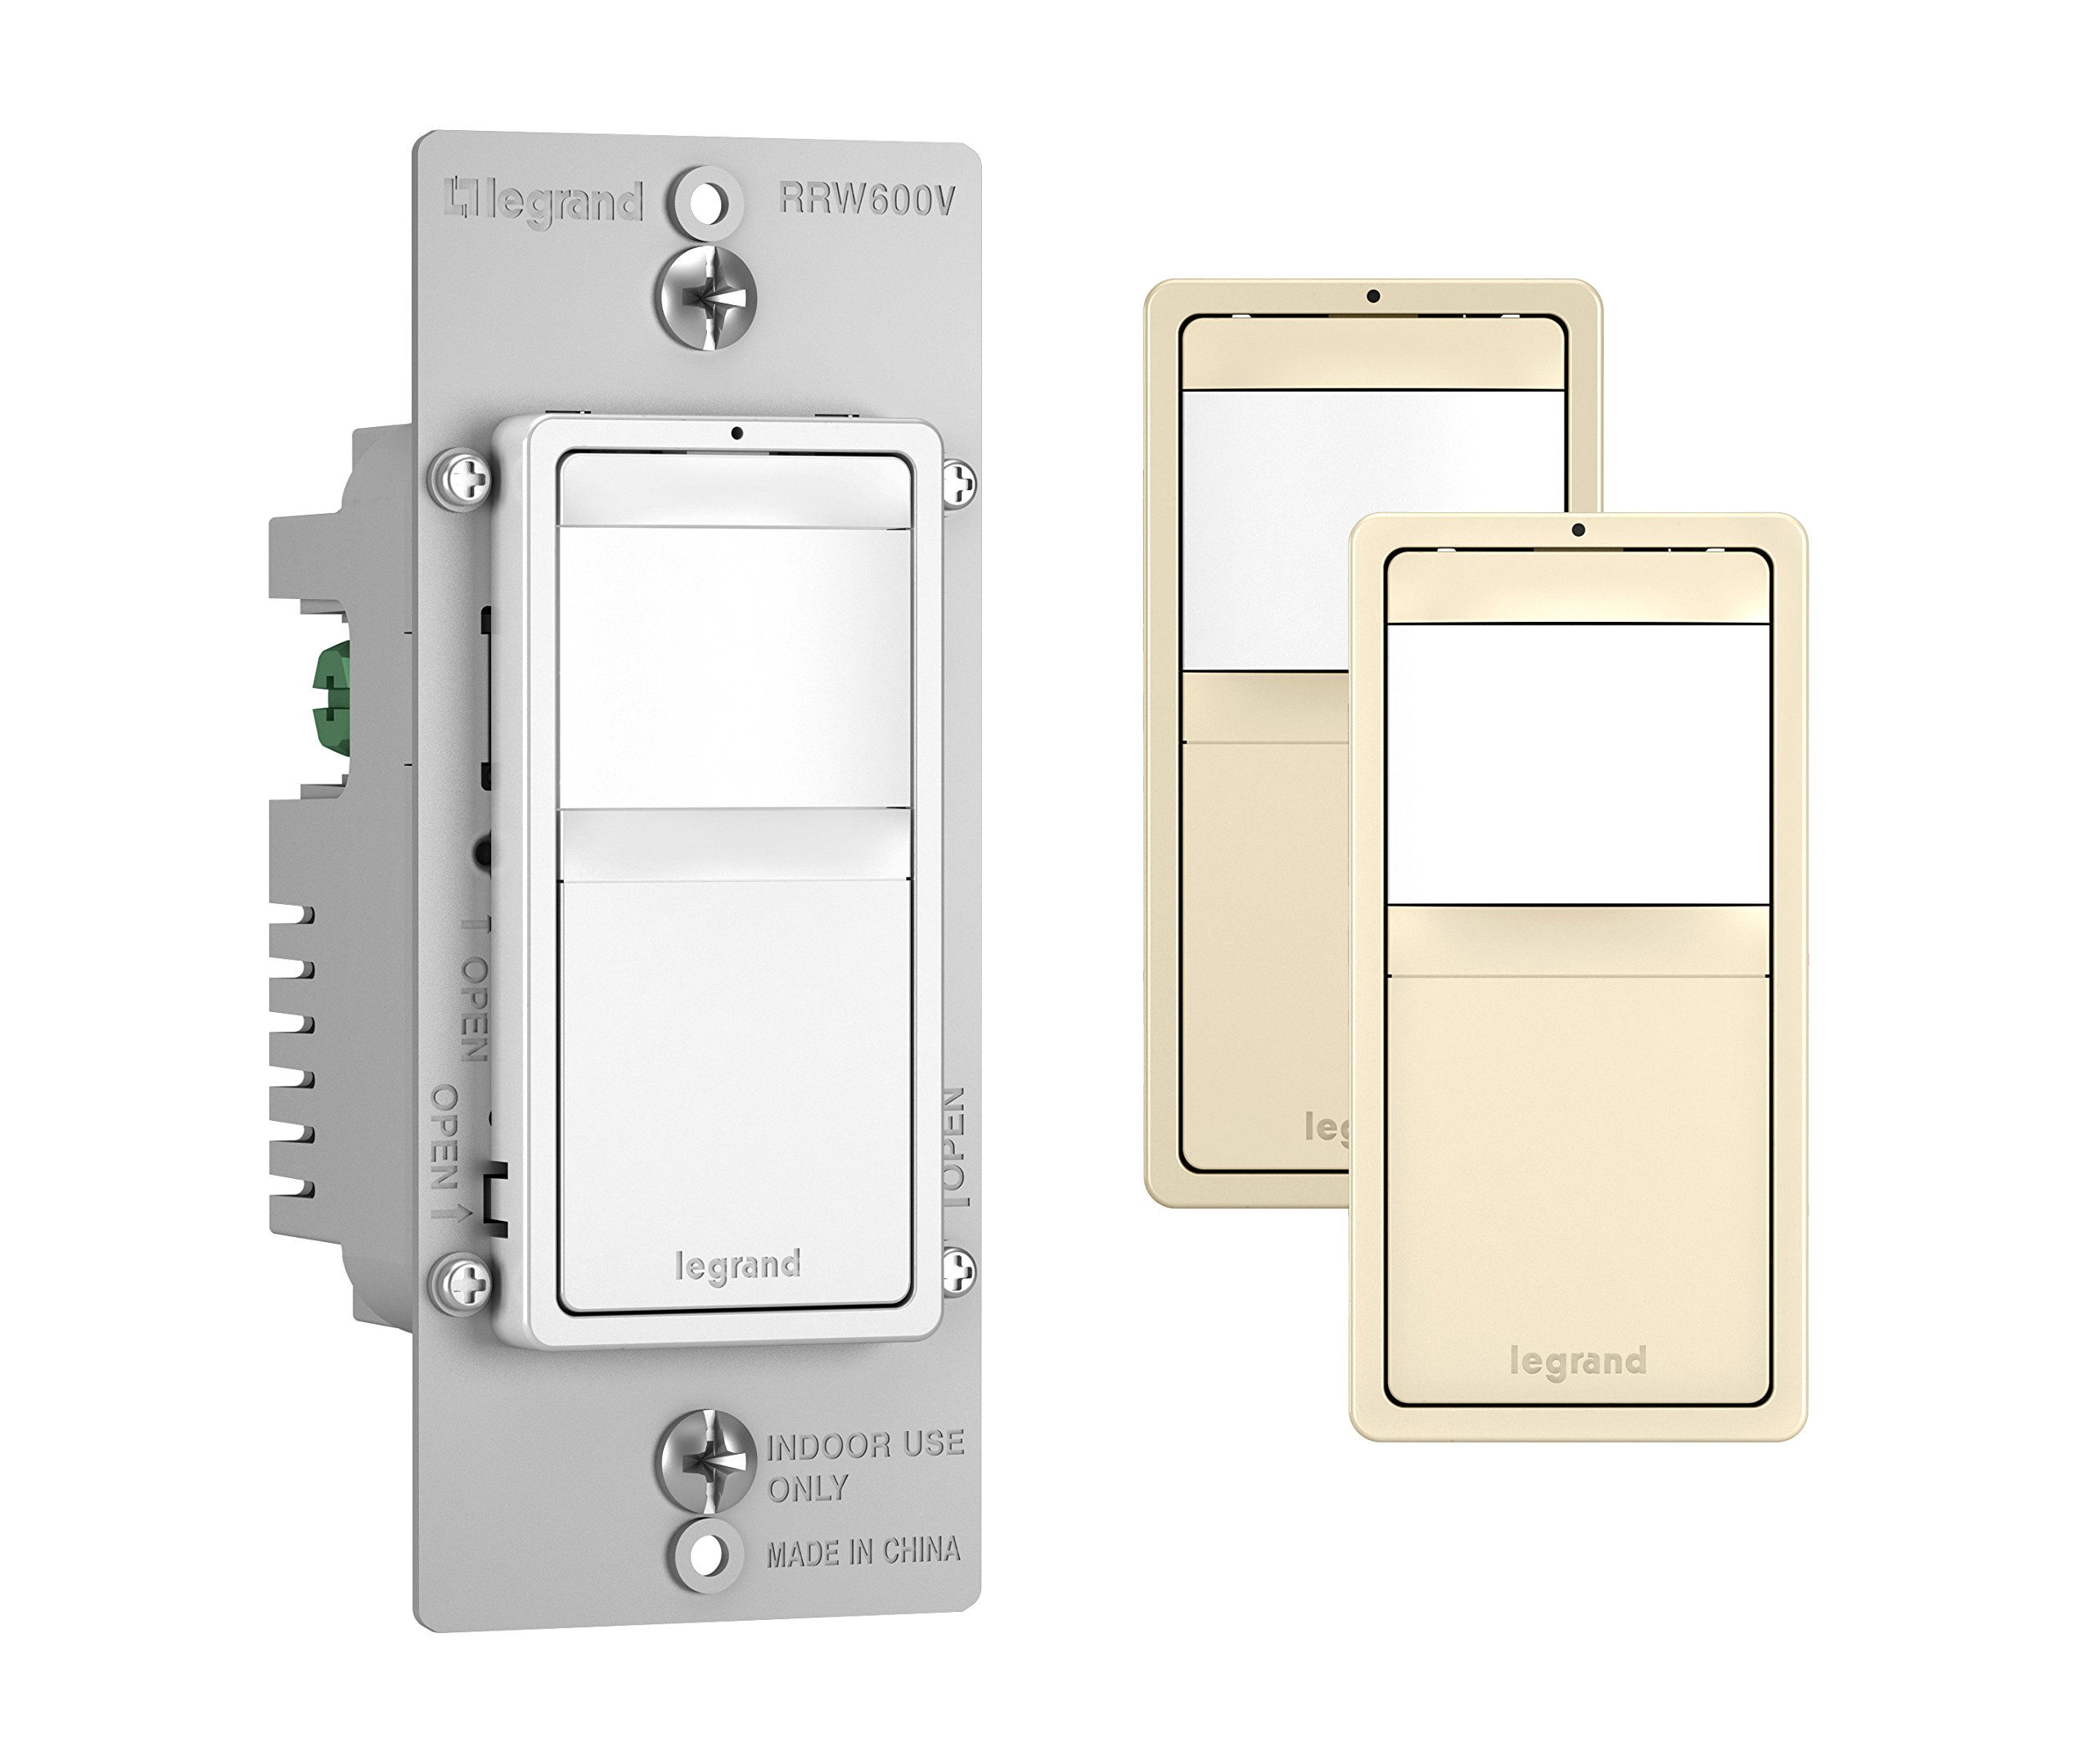 Product Title: Legrand - PASS & SEYMOUR Motion Sensor Light Switch, 120V Single Pole/3-Way Occupancy Sensor, Easy to Install, Tri-Color, Single pole.